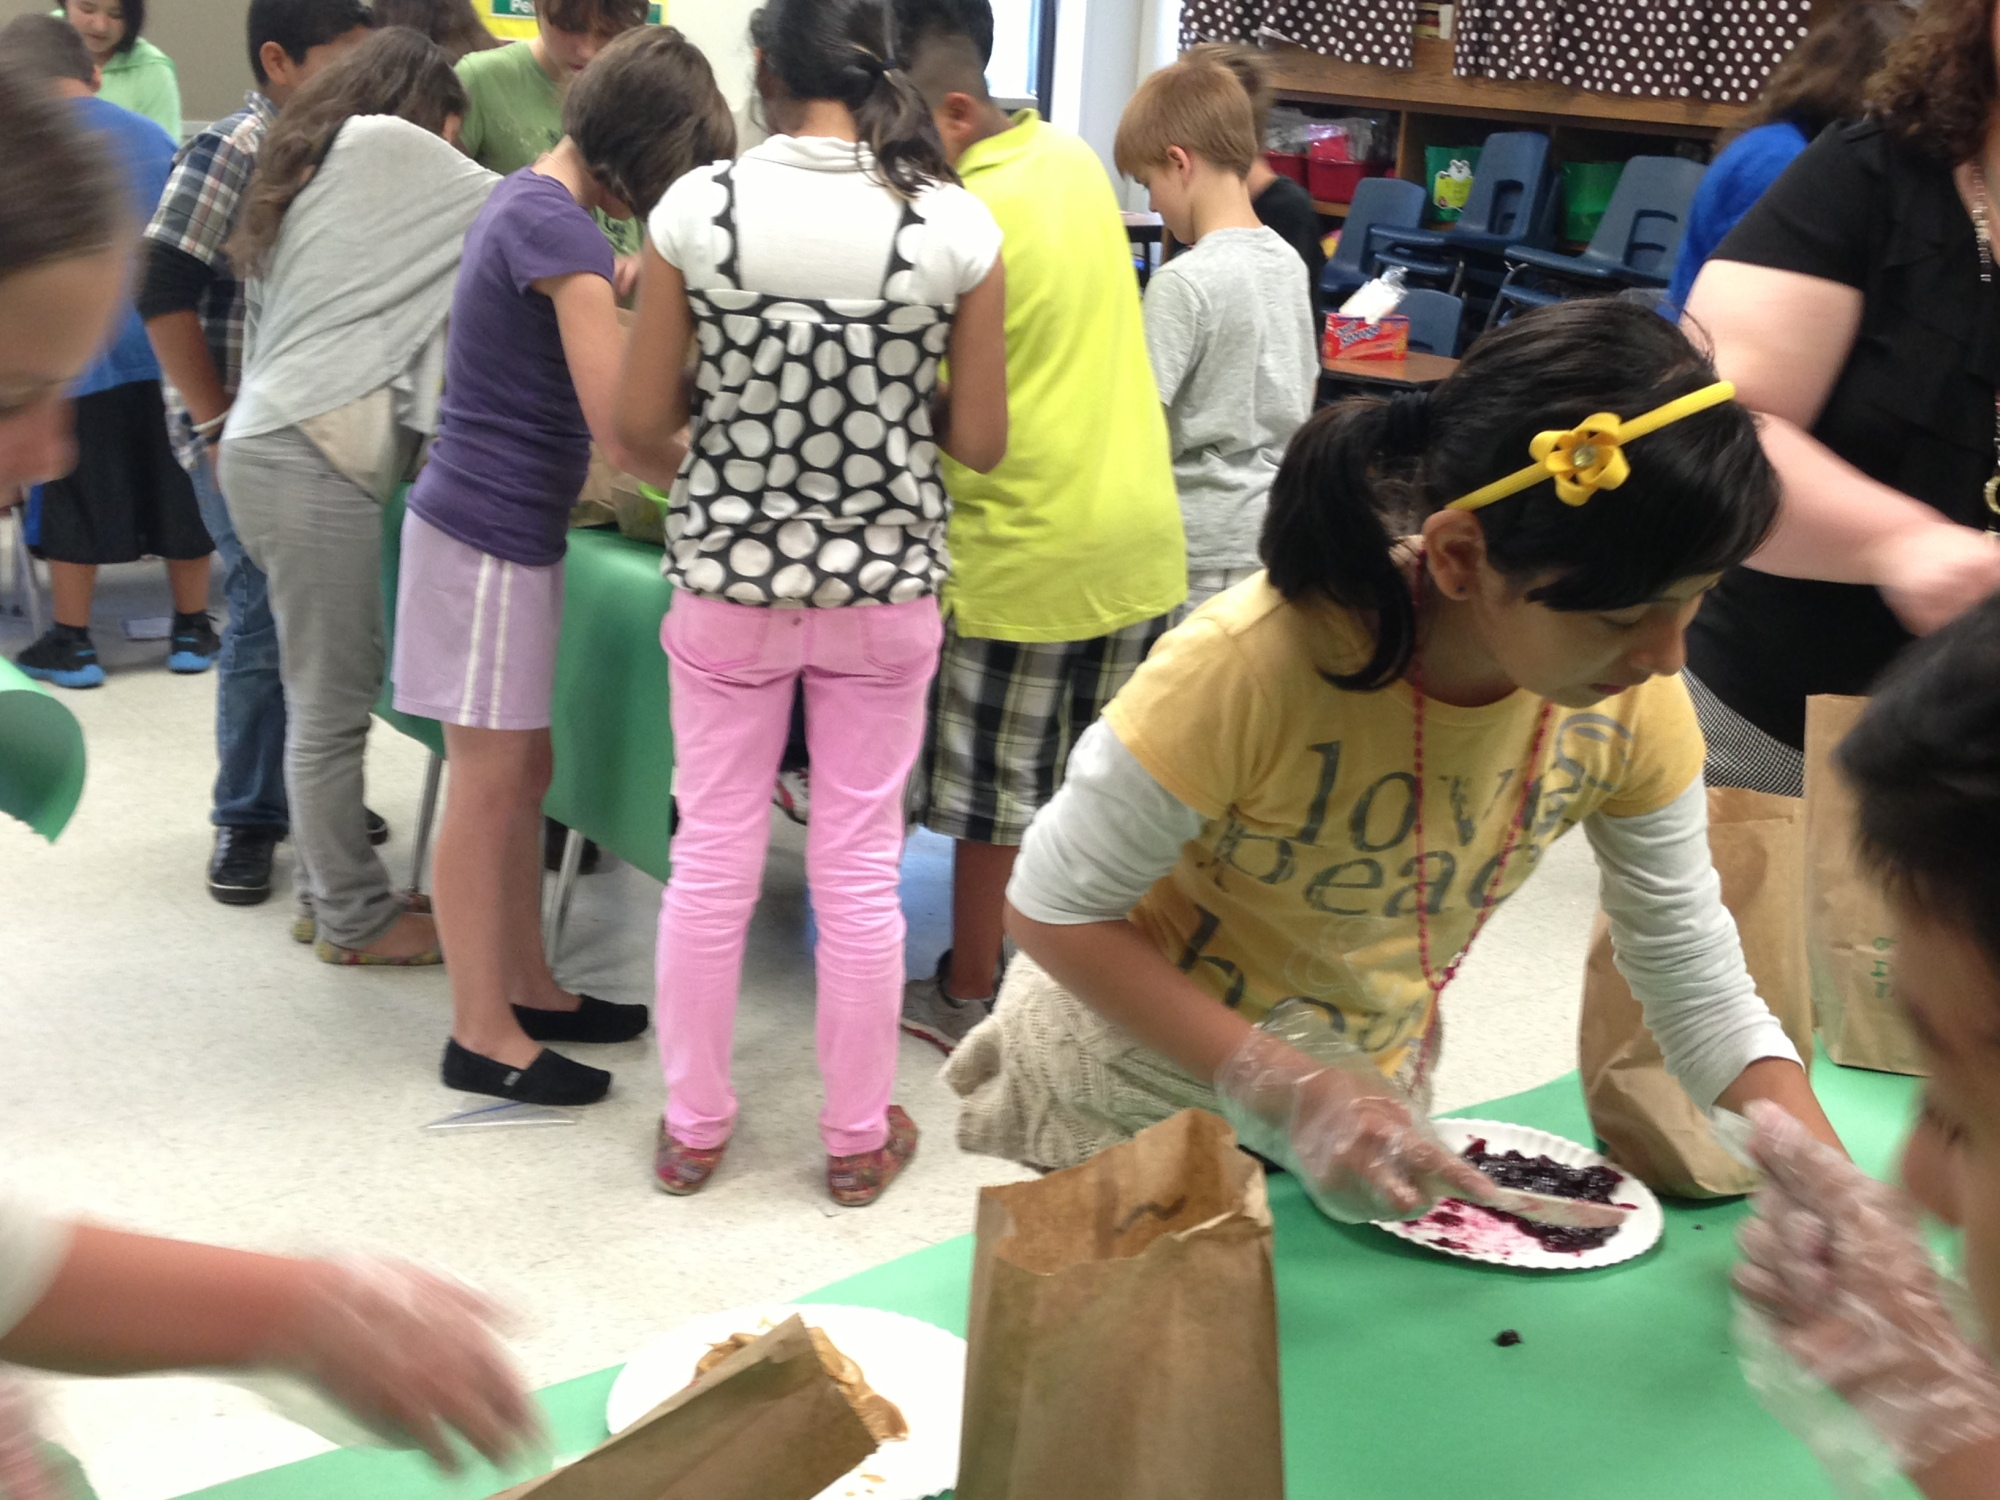 5th grade students pack lunches for relief efforts in Moore, OK